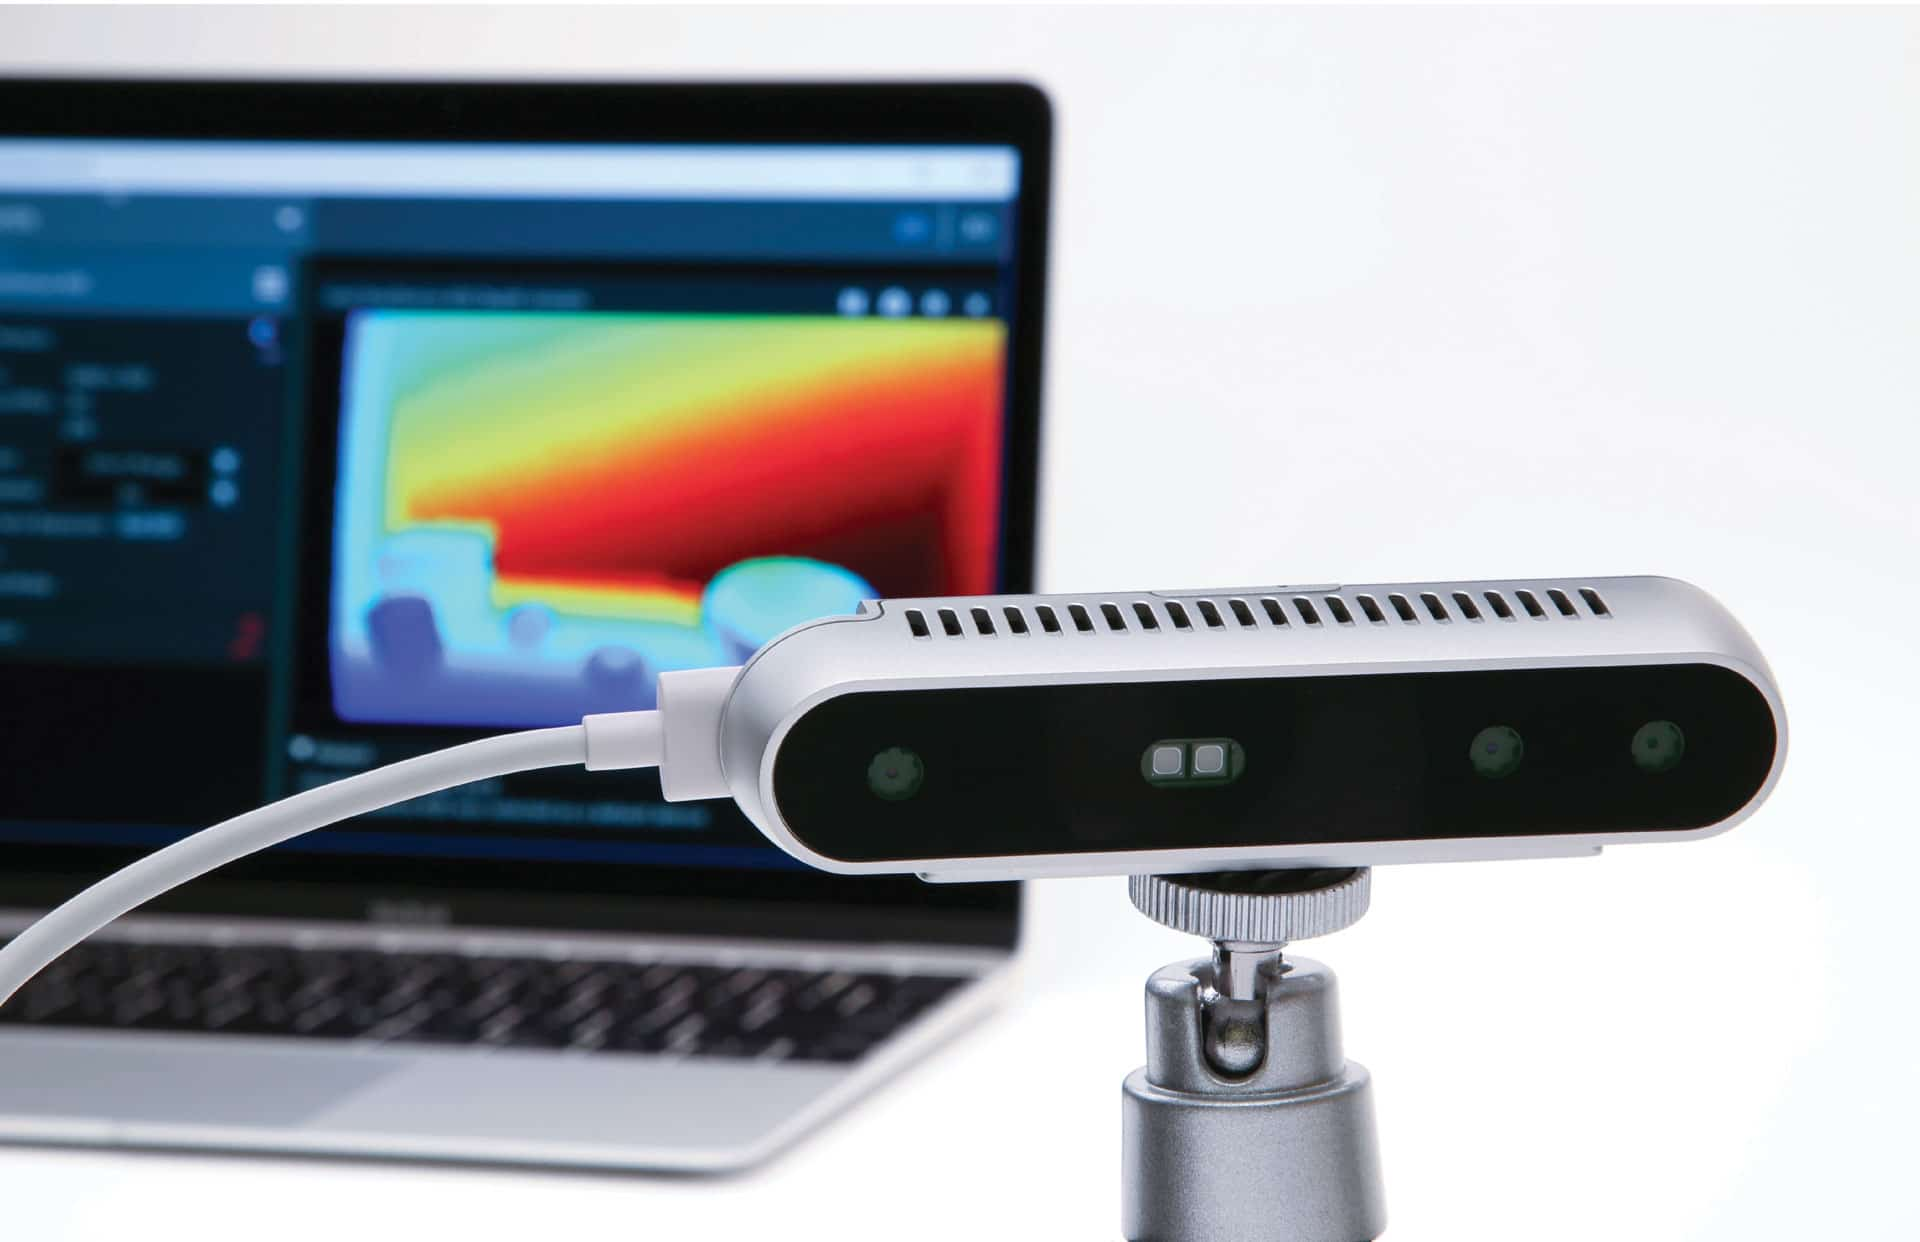 photo of intel realsense camera on a tripod plugged in with a laptop in the background